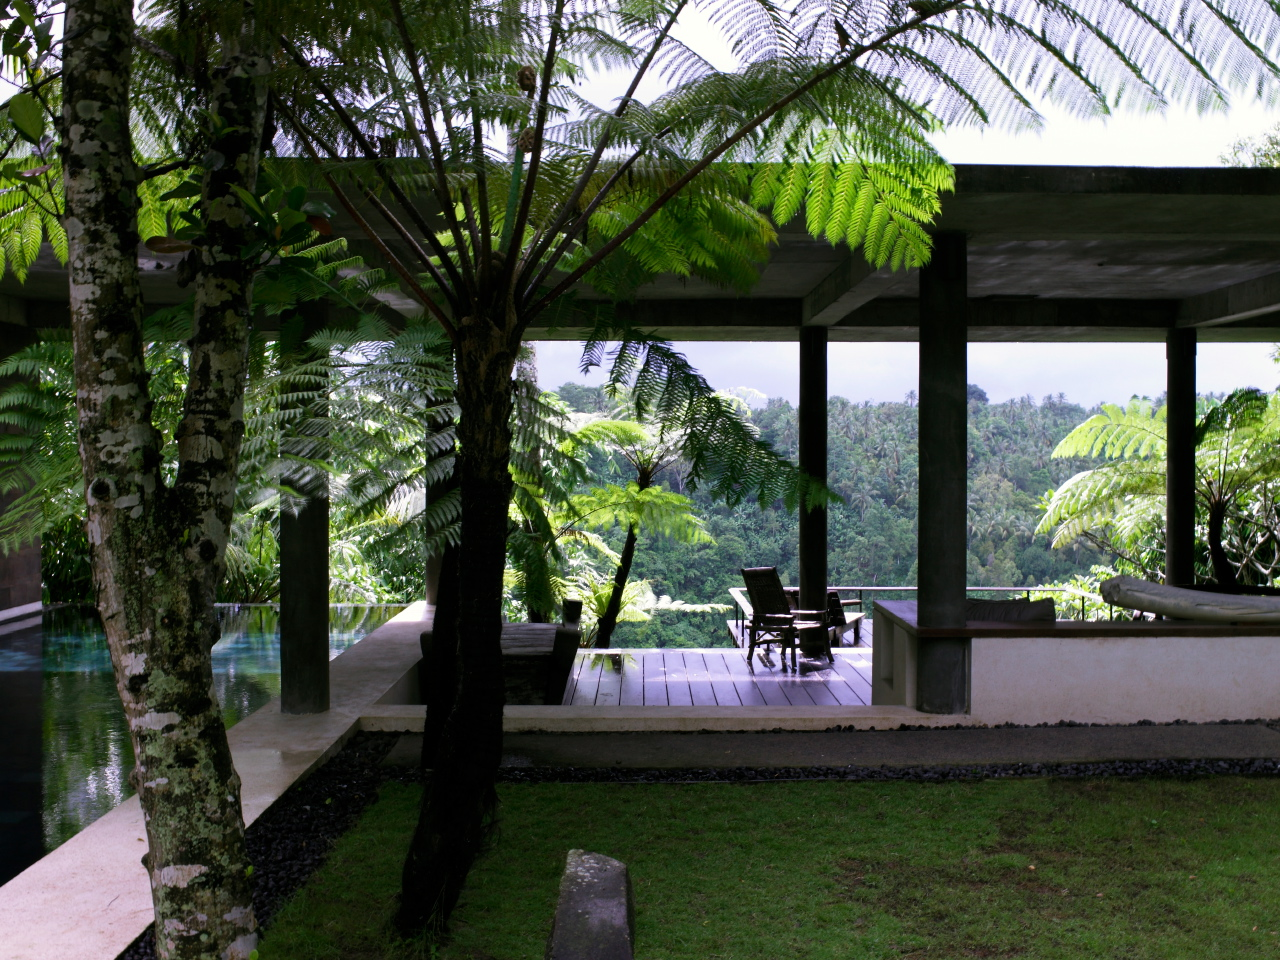 The 'Kuan House' near Ubud looks out onto a jungle forest. Due to the climate much of the house features cool covered areas that catch breezes off surrounding pools of water.